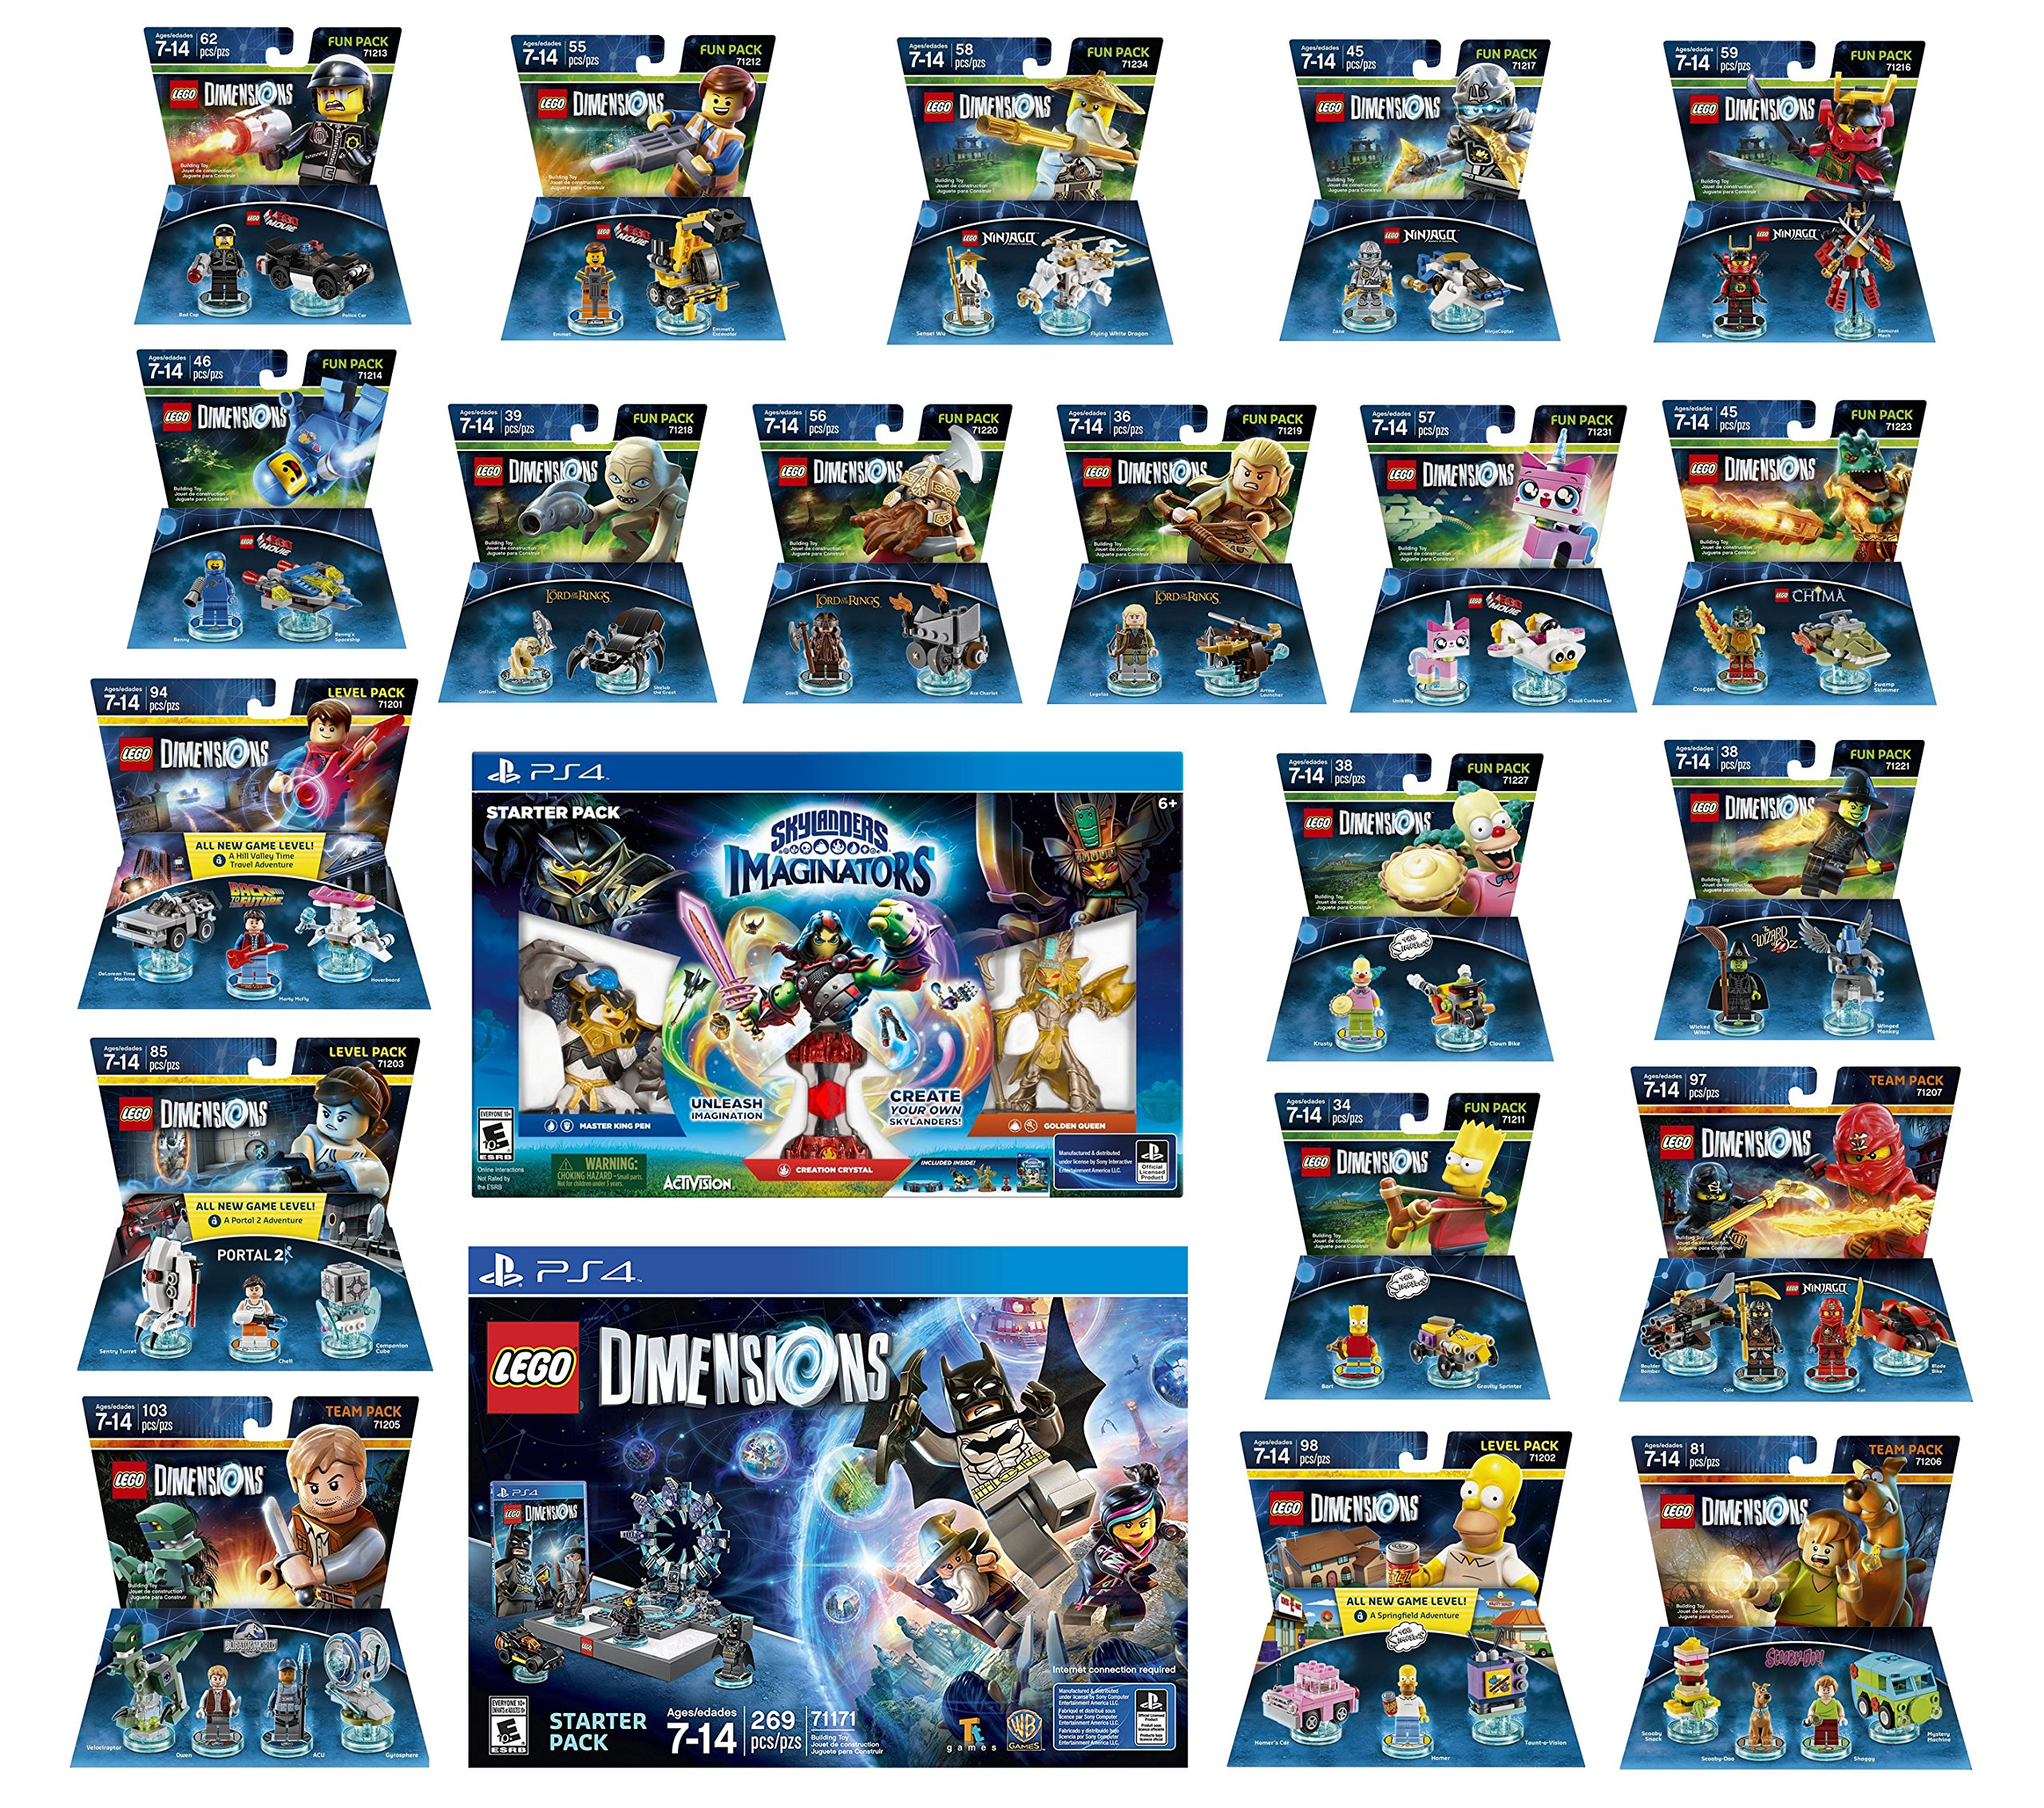 Skylanders Imaginators Starter Pack + Lego Dimensions Starter Pack + The Simpsons Homer + Scooby Doo + Portal 2 + Jurassic World + Back To The Future + 14 Fun Packs Playstation 4 or PS4 Pro Console